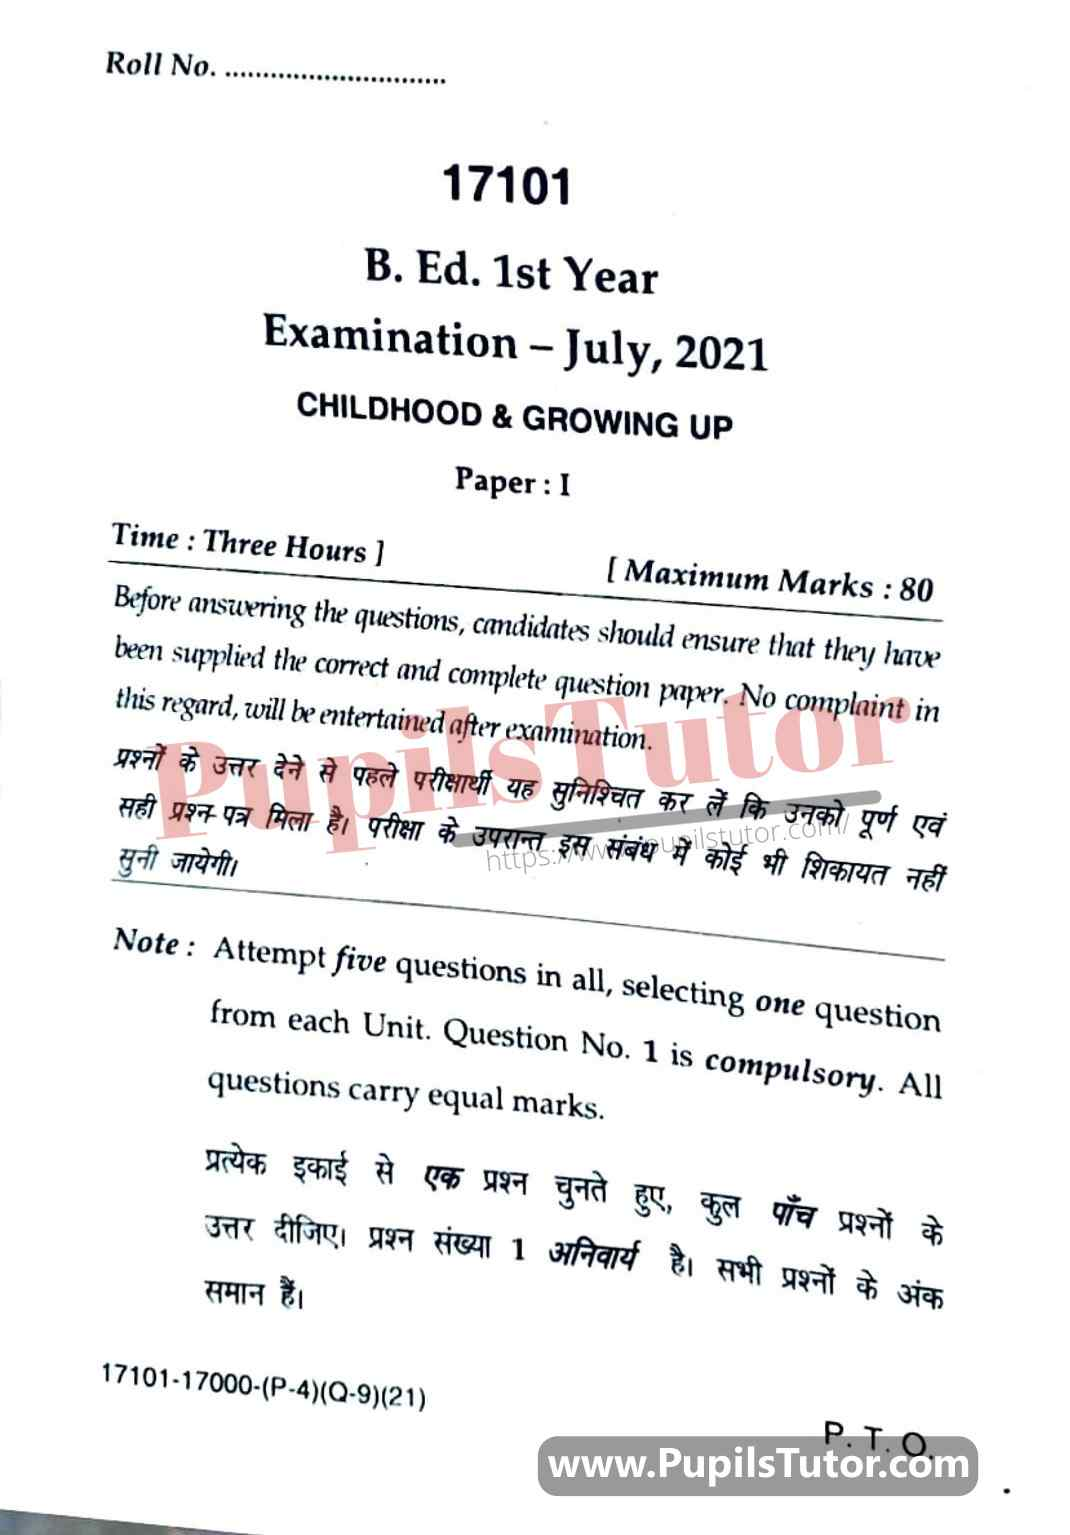 KUK (Kurukshetra University, Haryana) Childhood And Growing Up Question Paper 2021 For B.Ed 1st And 2nd Year And All The 4 Semesters In English And Hindi Medium Free Download PDF - Page 1 - Pupils Tutor